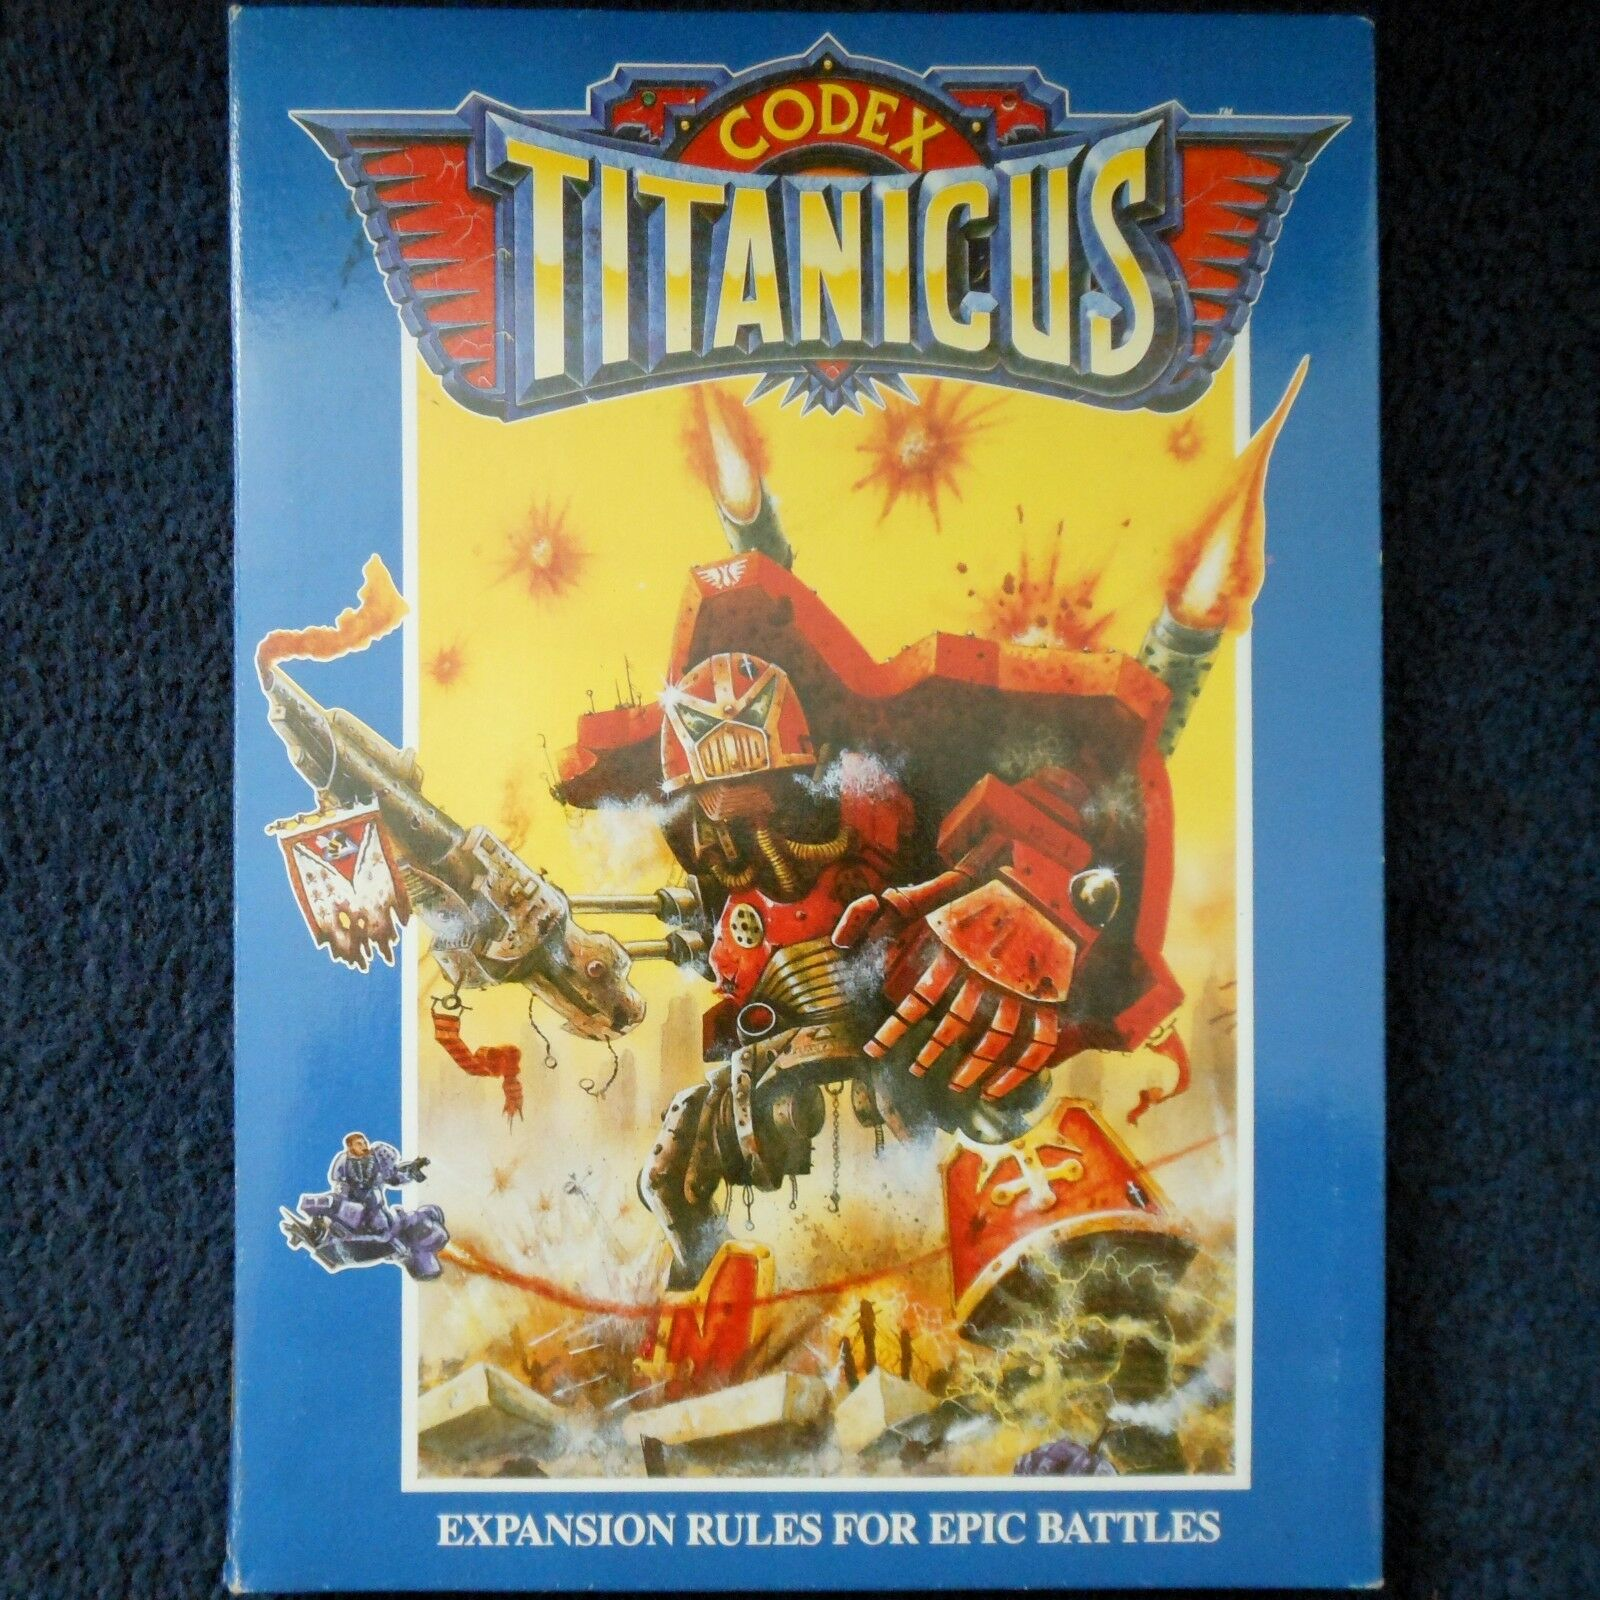 1989 Epic Codex Titanicus Rule Book Titan Citadel 40K Warhammer Space Marine GW